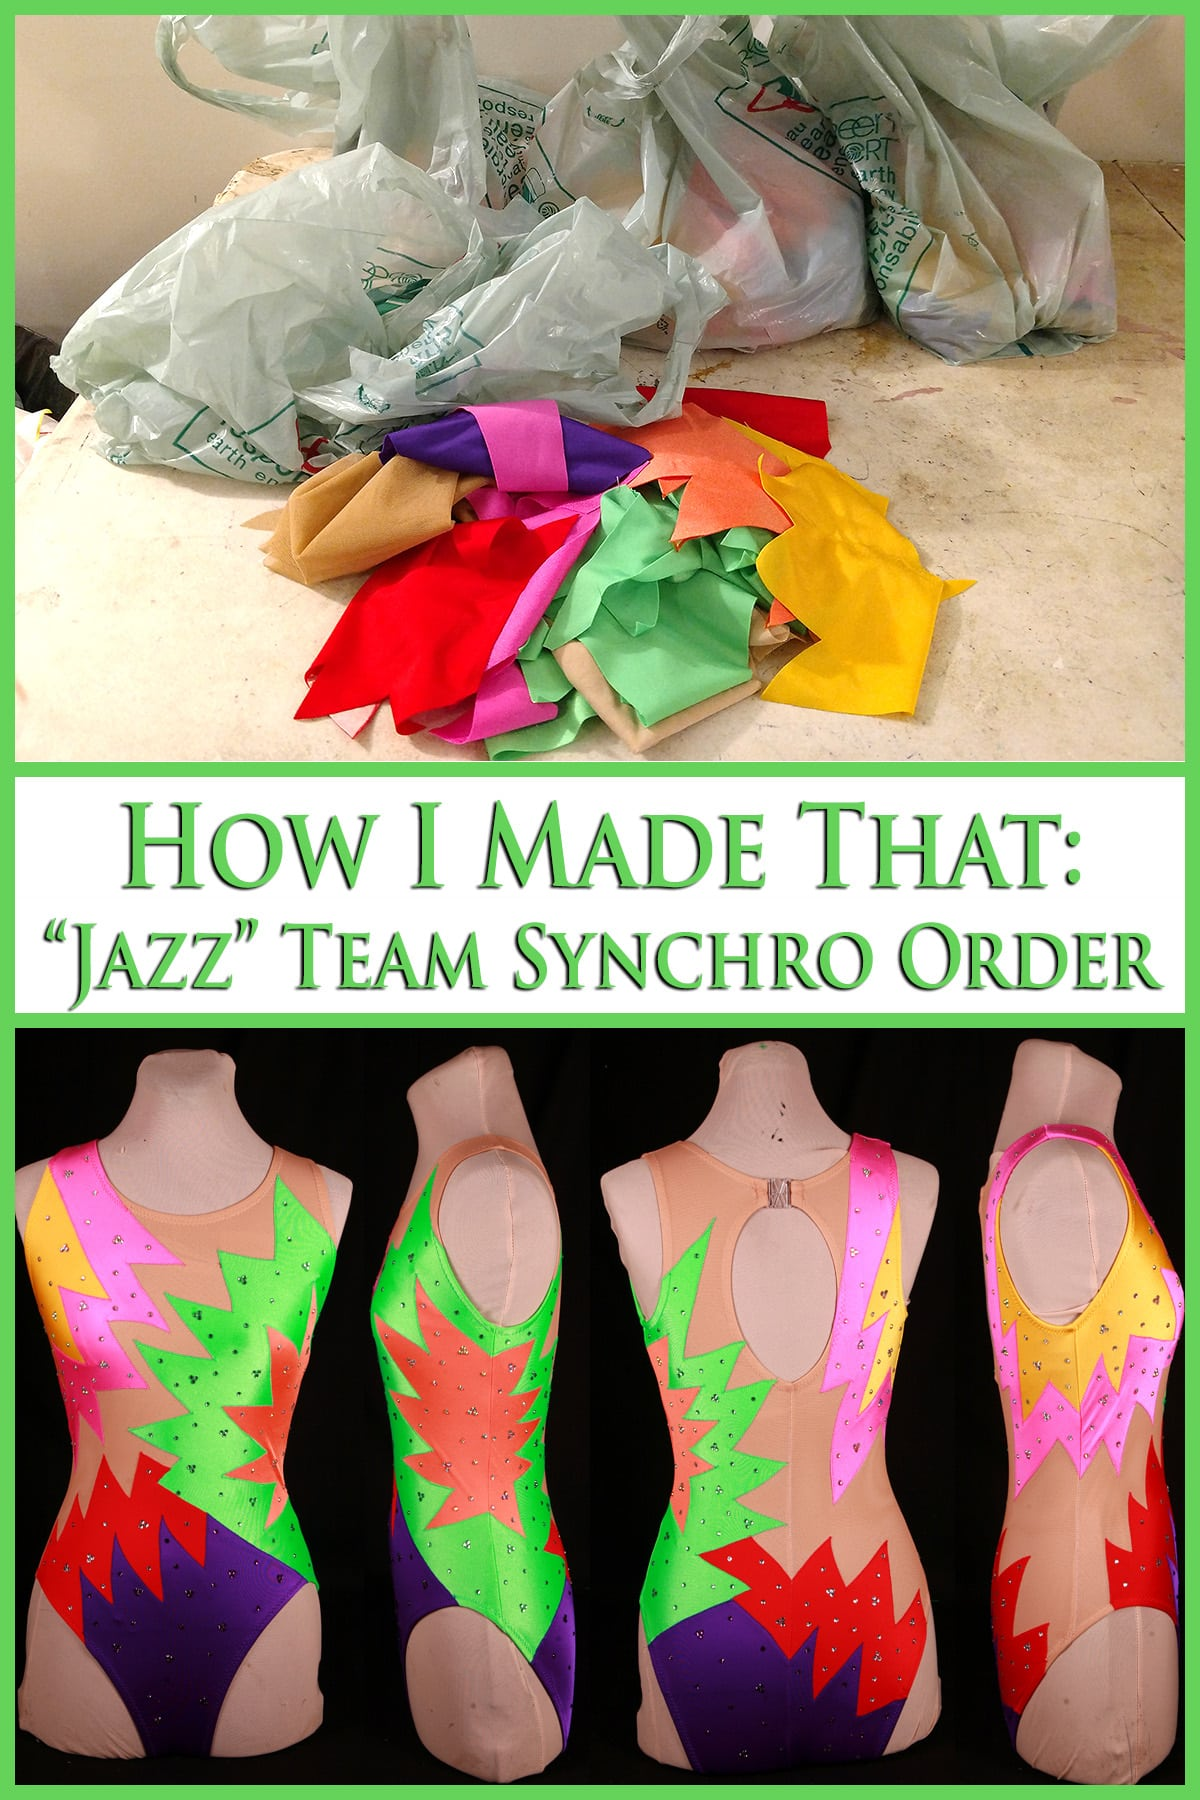 A 3 part compilation image, showing grey coloured grocery bags behind a pile of colourful fabric, Front, back, and both side views of the finished synchro suits, on a dress form, and text that says how I made that: Jazz team synchro order.